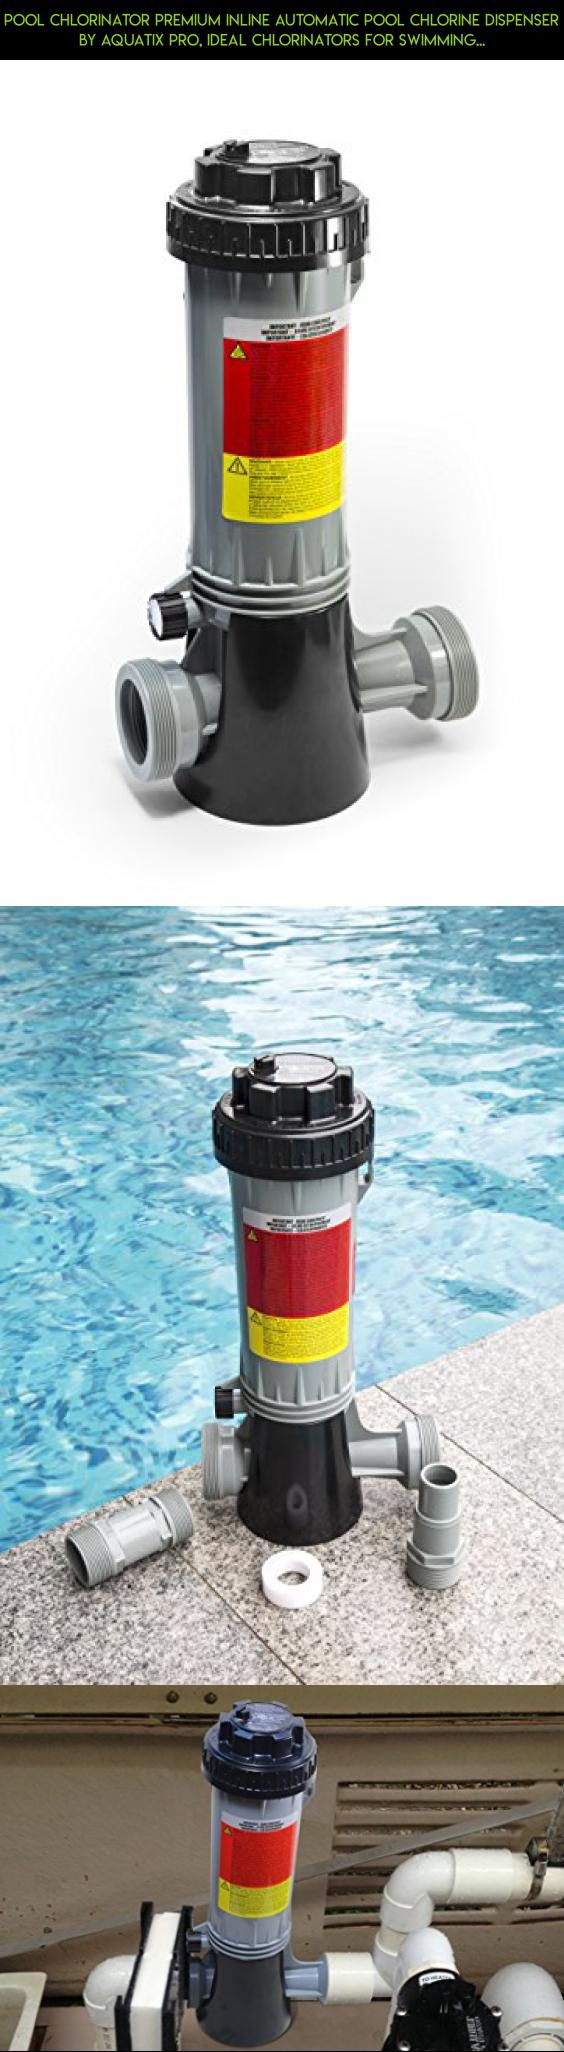 Pool Chlorinator Premium inline Automatic Pool Chlorine Dispenser by Aquatix Pro, Ideal Chlorinators for Swimming Pools, Hot Tubs & Spas, Heavy Duty Bromine Feeder with Mounting Base #pool #drone #fpv #kit #camera #gadgets #hot #plans #products #racing #tubs #shopping #swimming #technology #tech #parts